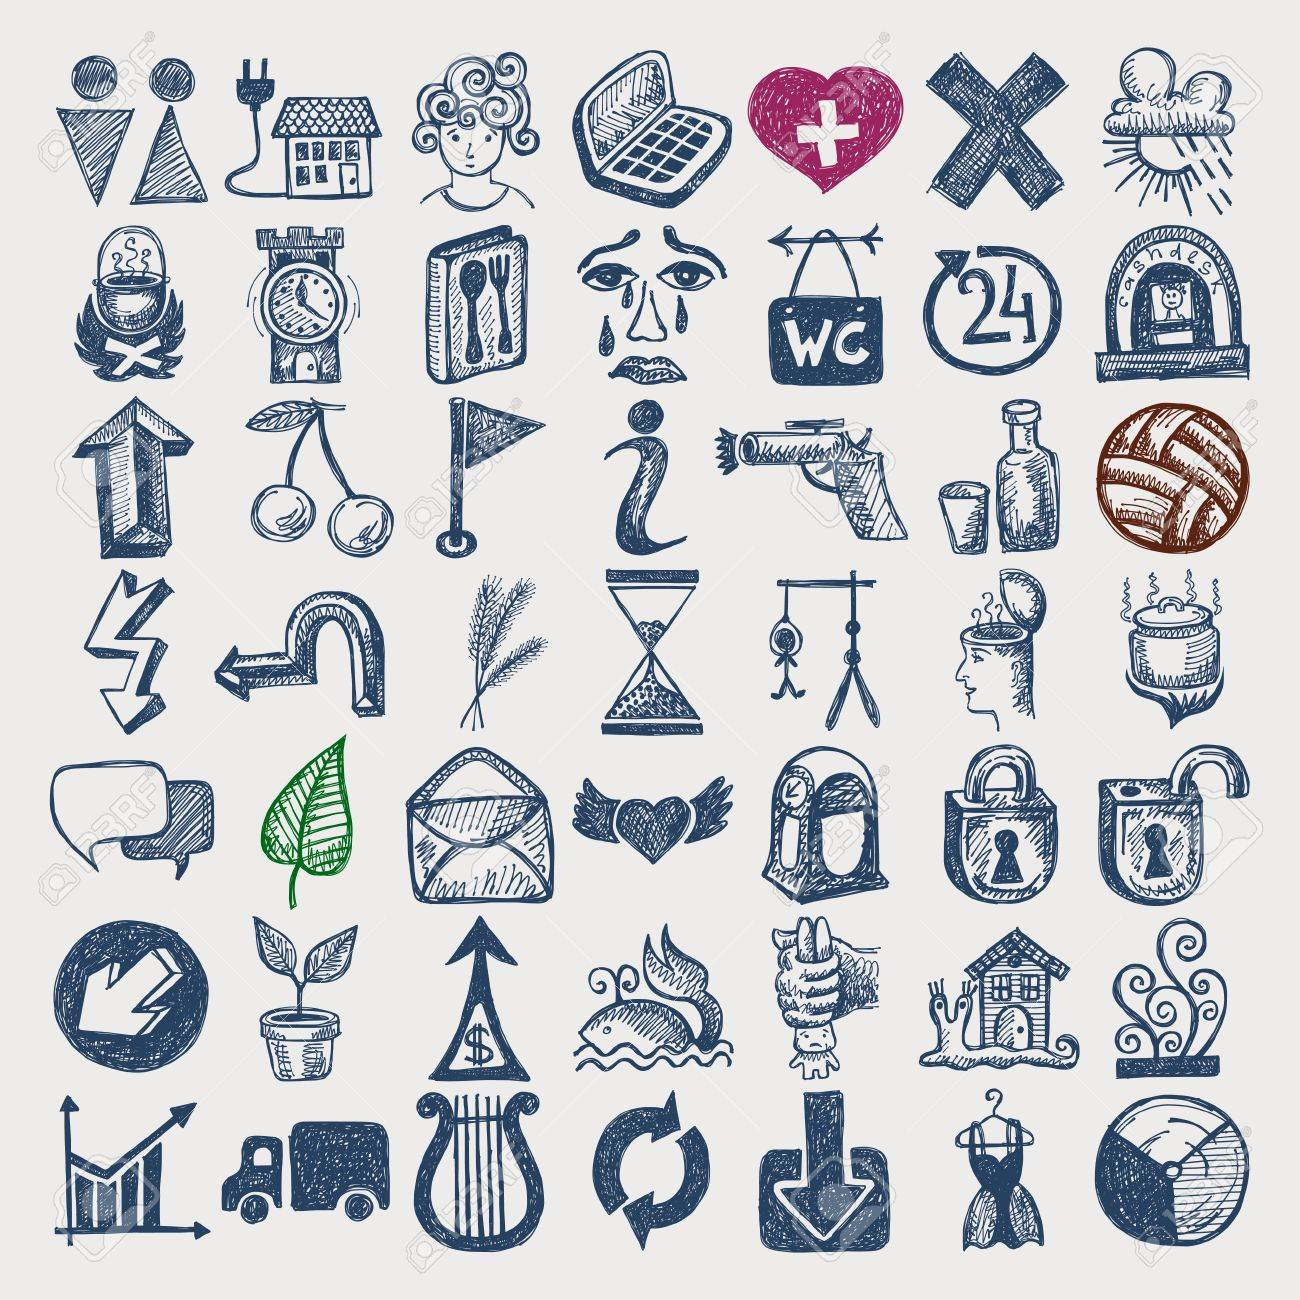 49 hand drawing doodle icon set Stock Vector - 18000003